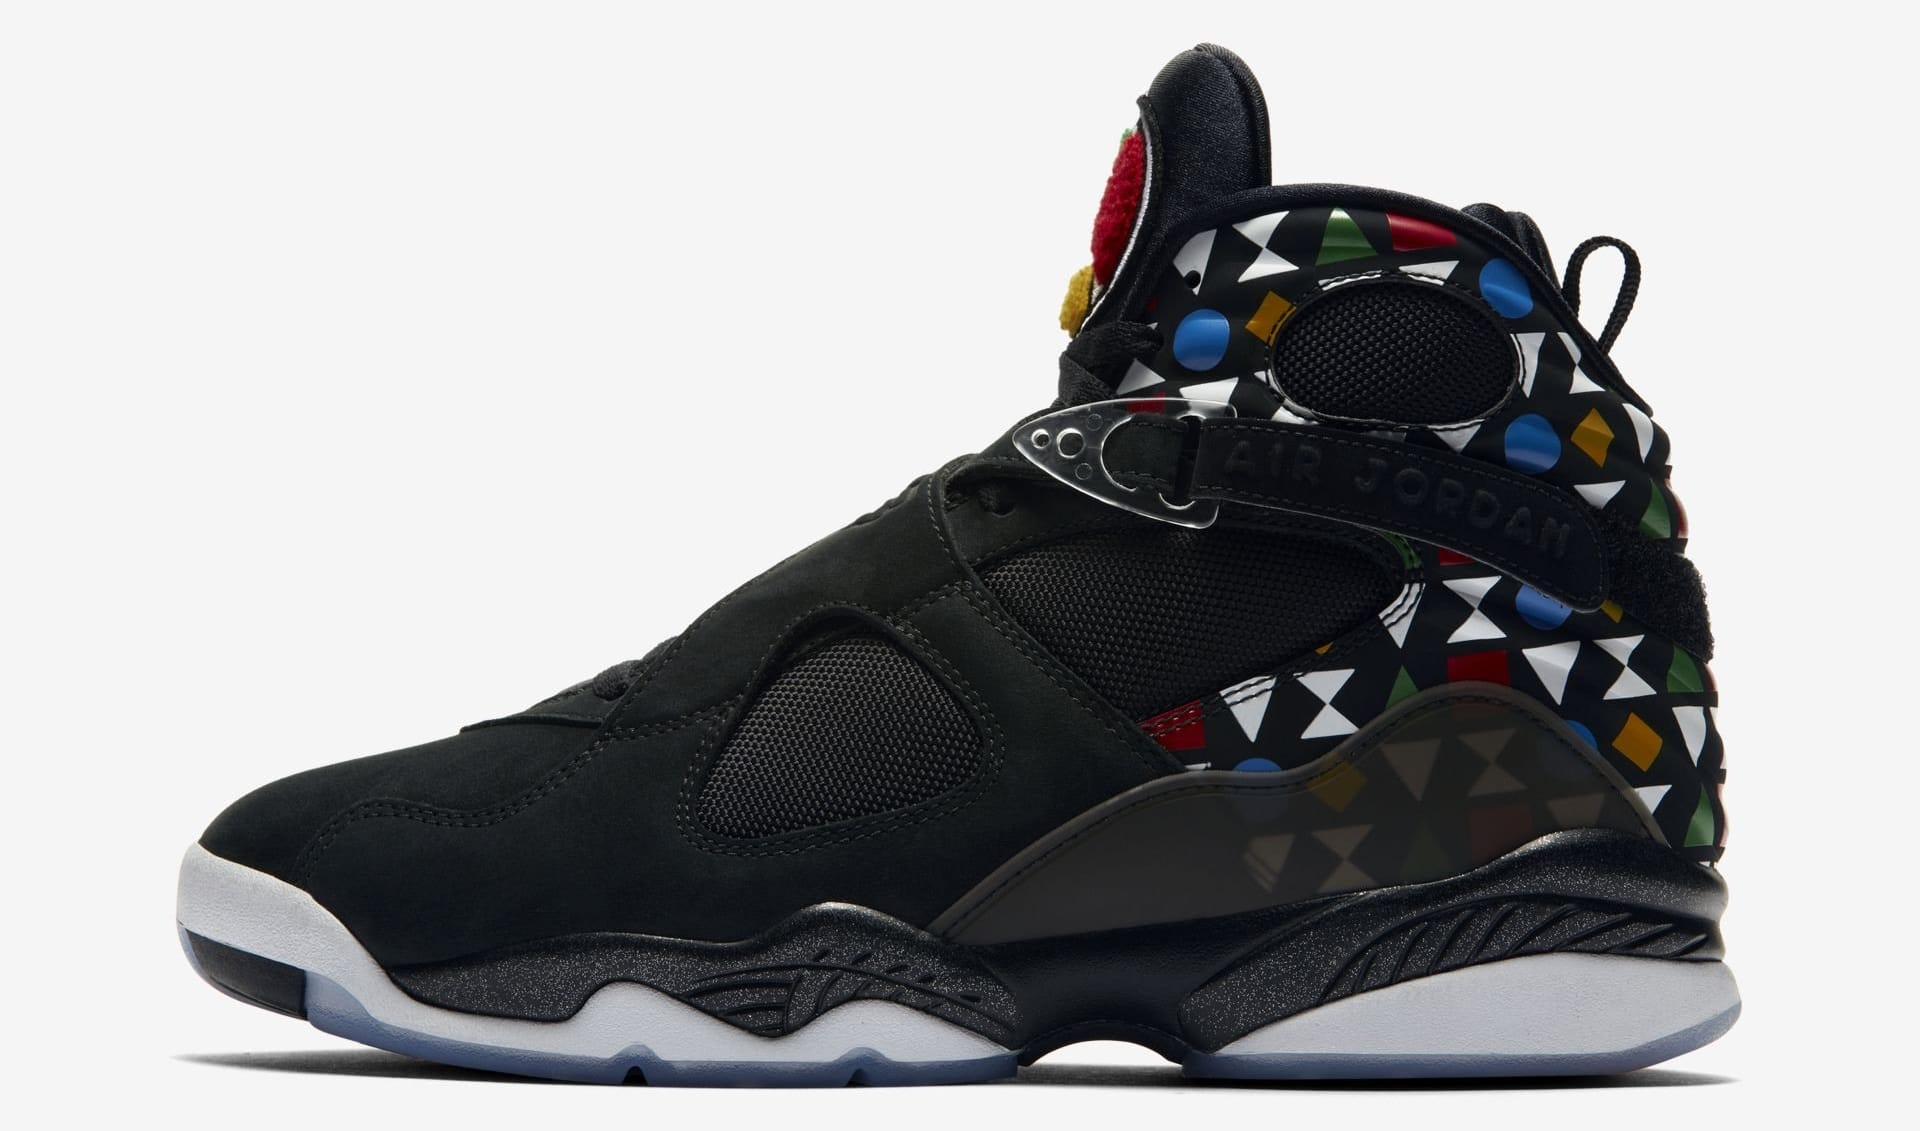 First Look at the 'Quai 54' Air Jordan 8